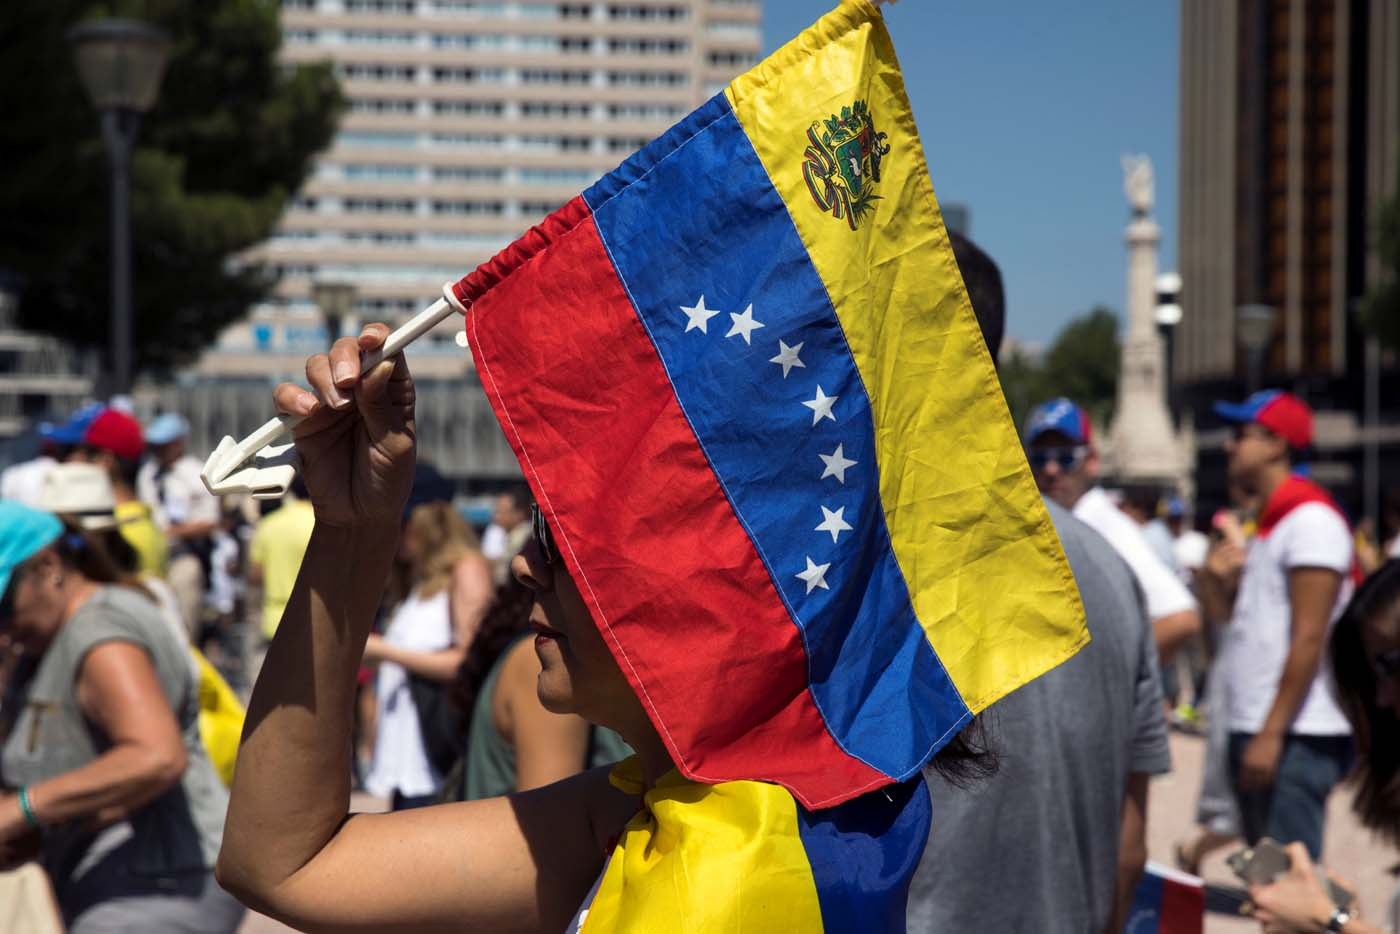 A woman holds a Venezuelan national flag during an unofficial plebiscite against Venezuela's President Nicolas Maduro's government in Madrid, Spain, July 16, 2017. REUTERS/Juan Medina